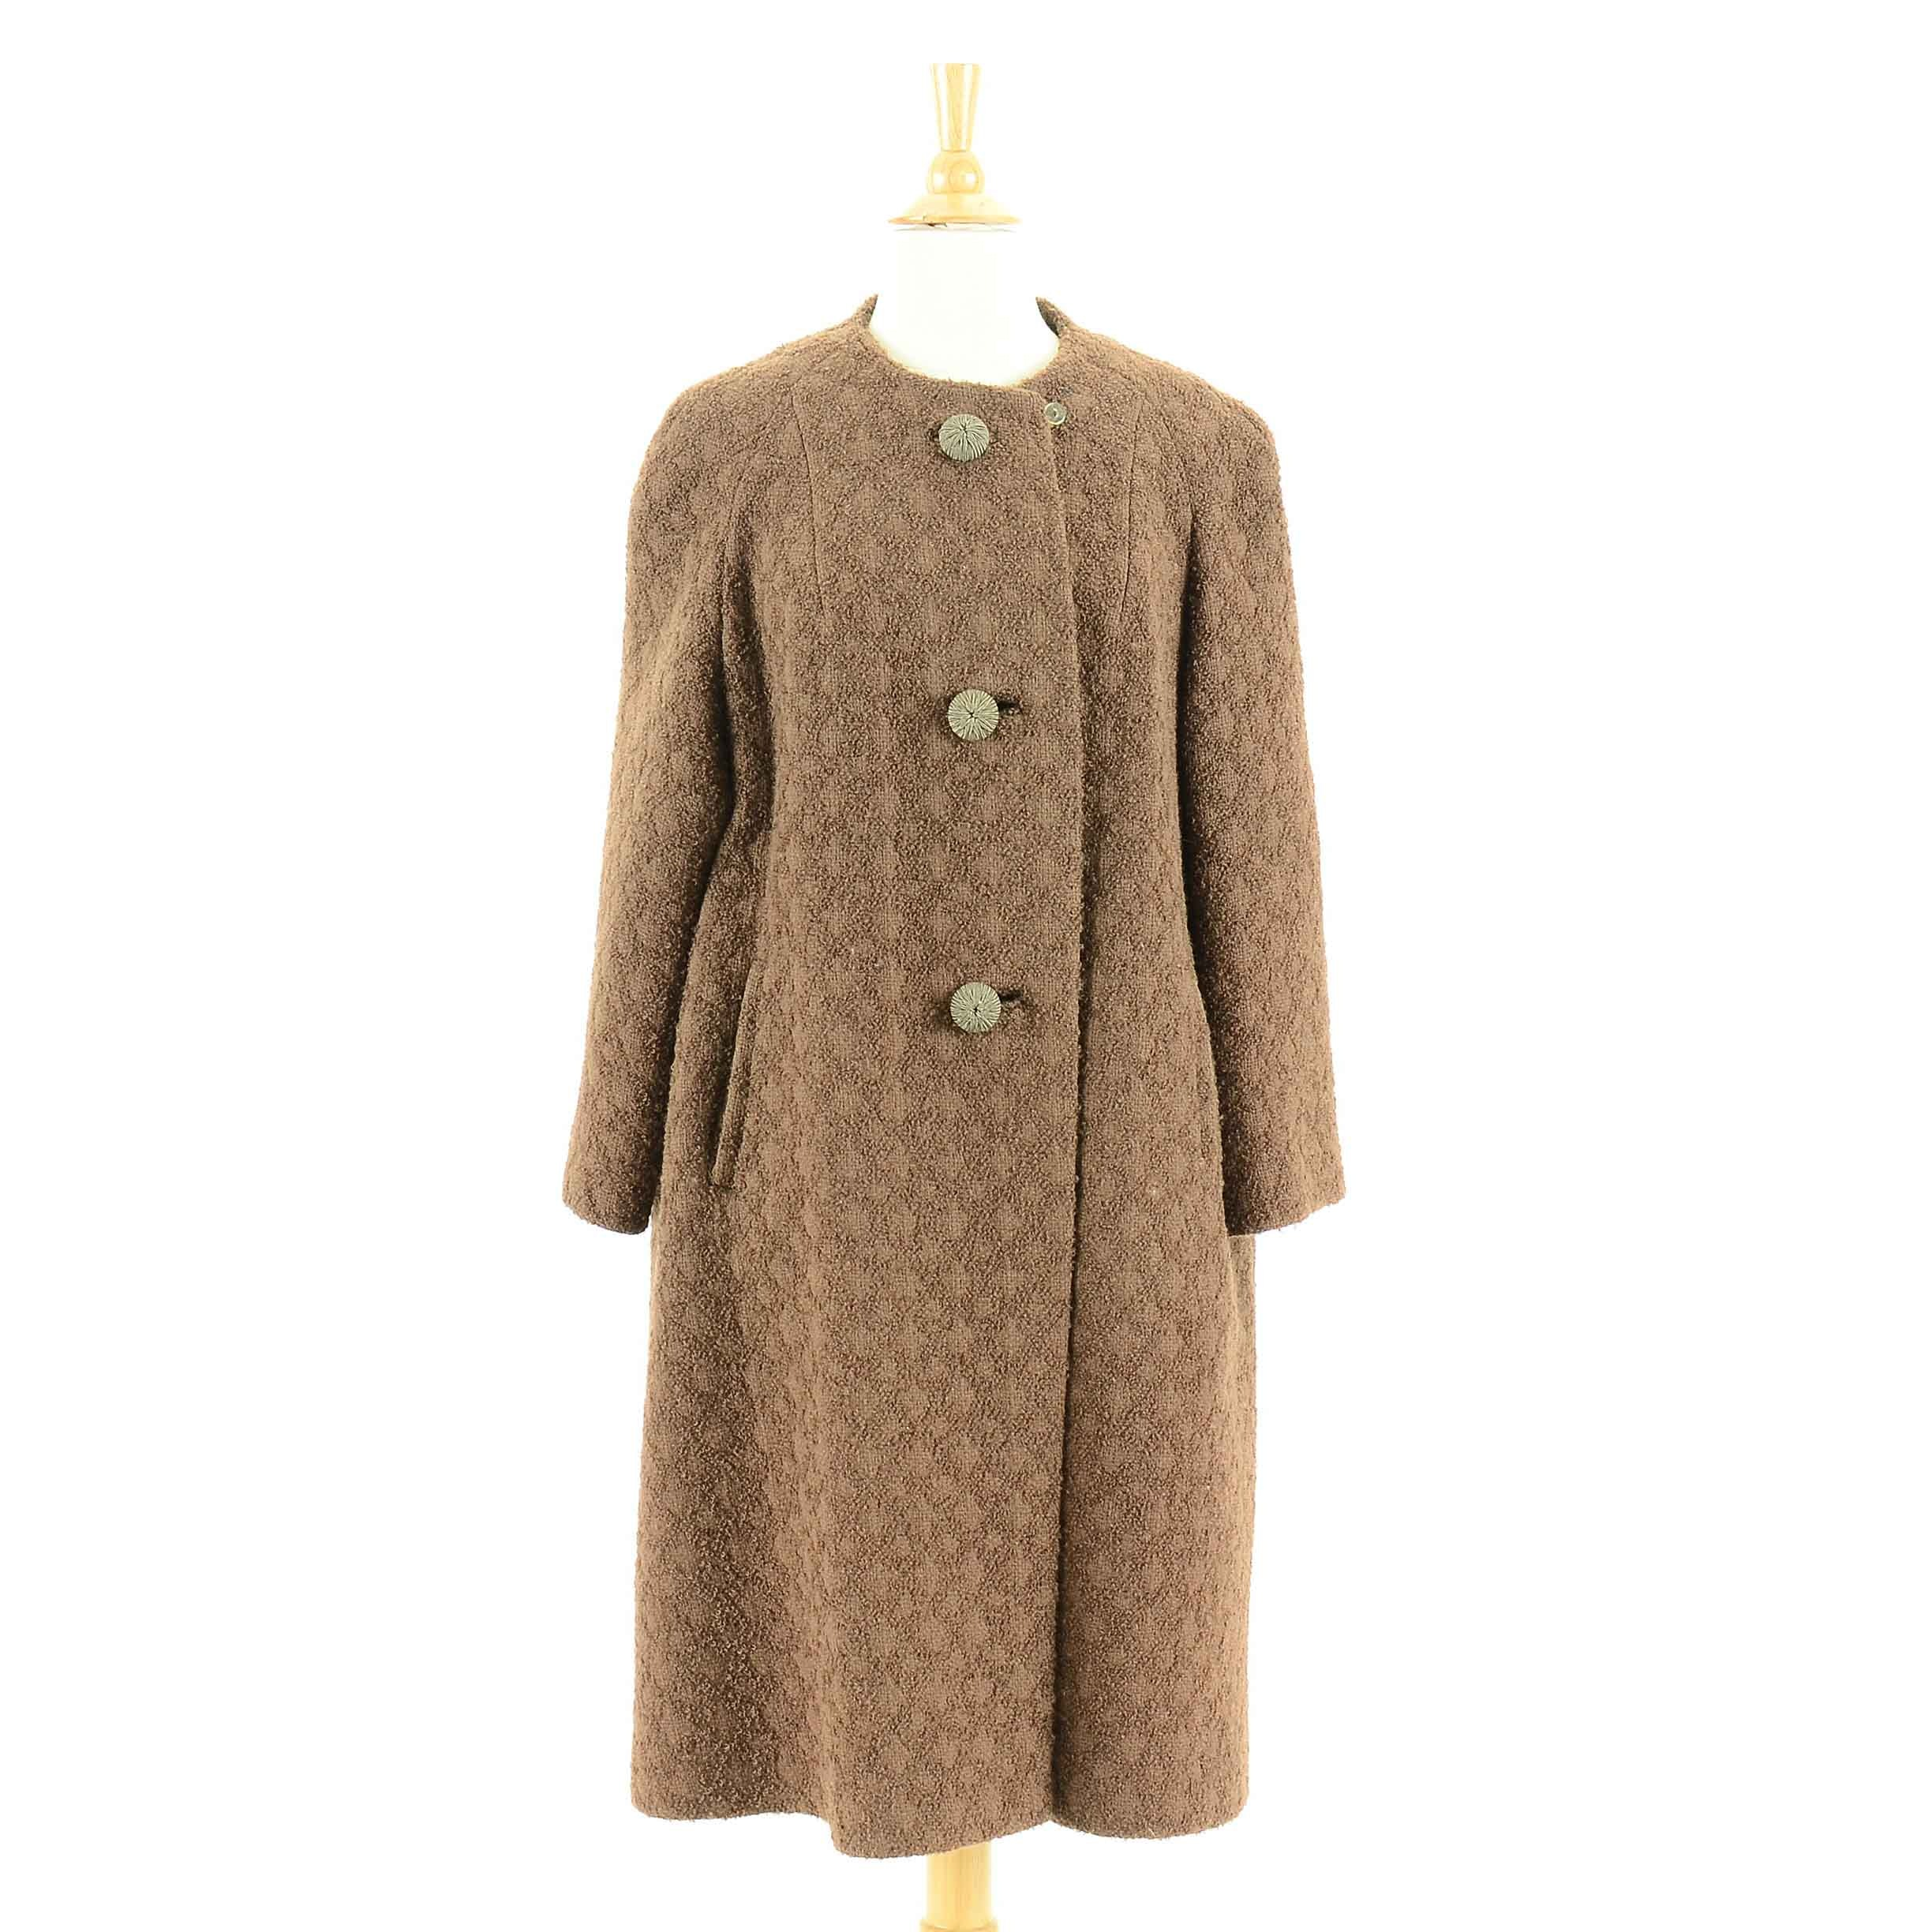 Vintage 1960s Women's Wool Swing Coat